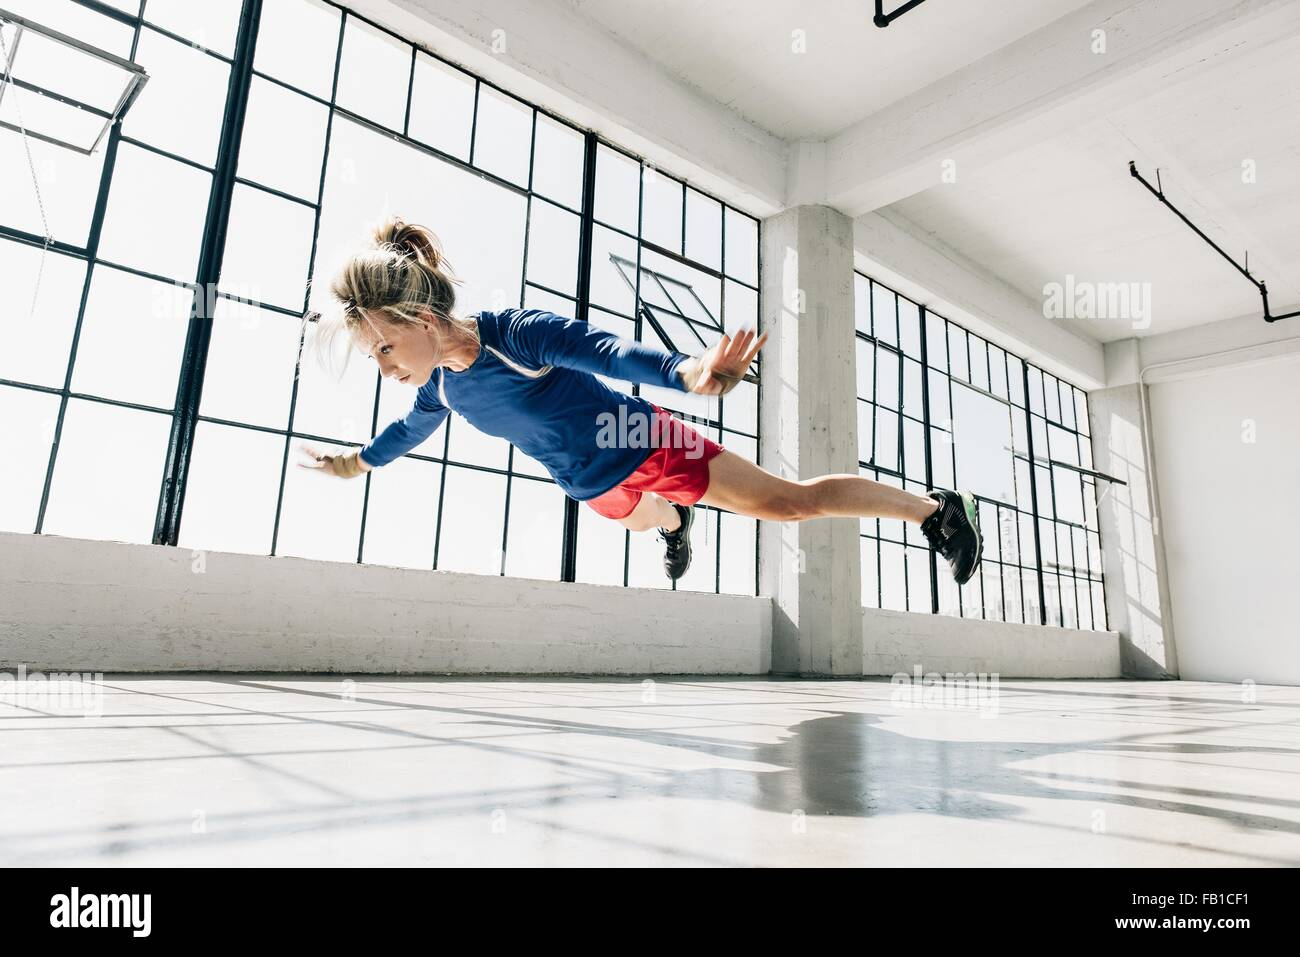 Low angle view of young woman in mid air faire pousser vers le haut Photo Stock